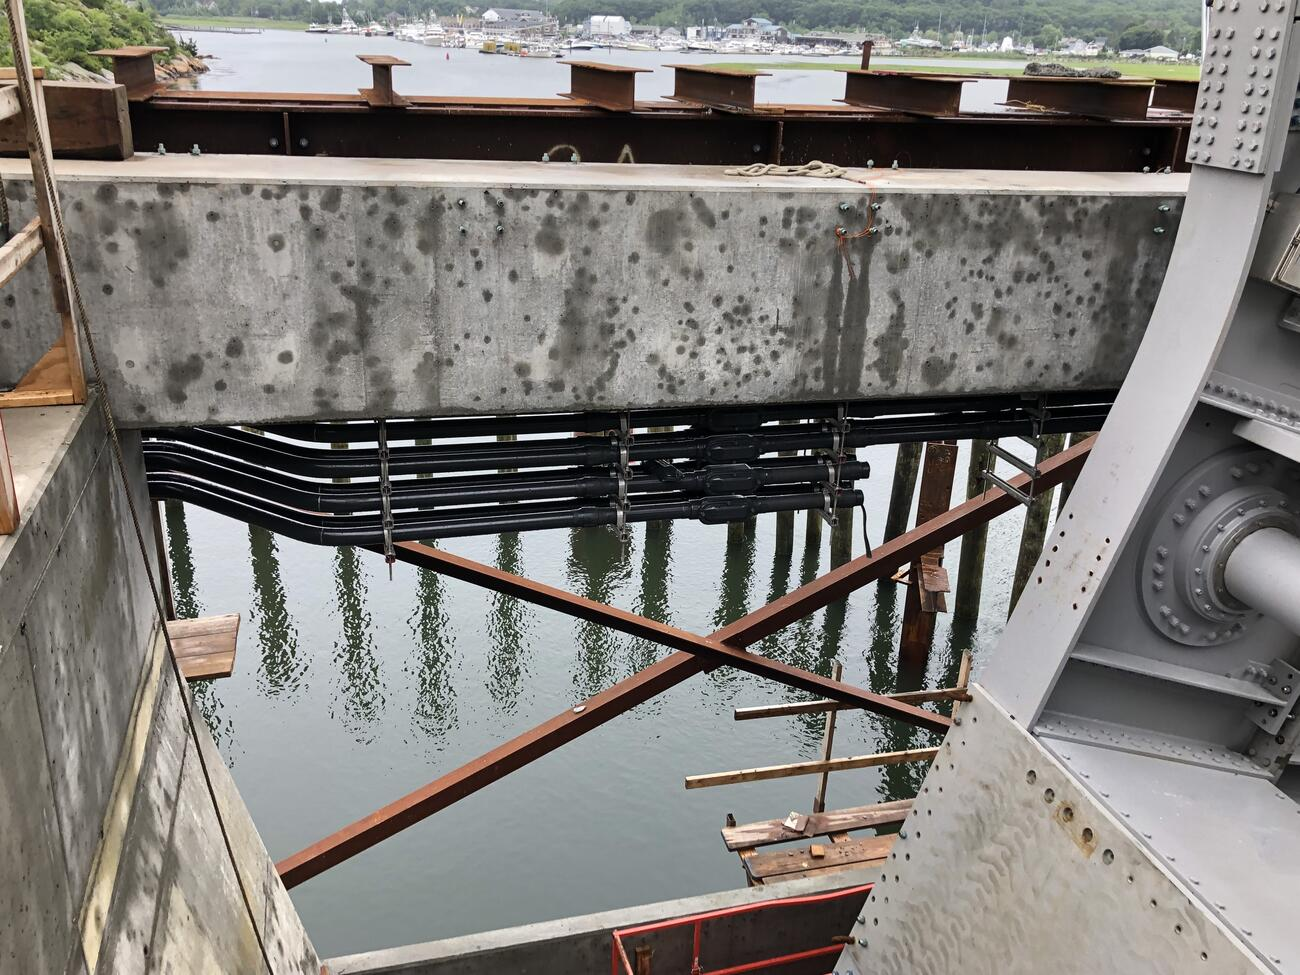 At top, I-beams rest perpendicular to a riveted steel beam that spans the image horizontally. Below that is a large horizontal cement structure, suspended from which are long, black, horizontal conduit pipes. The center of the image looks down onto the waterway, which is framed by a cement wall at left and riveted steel structural elements on the right.